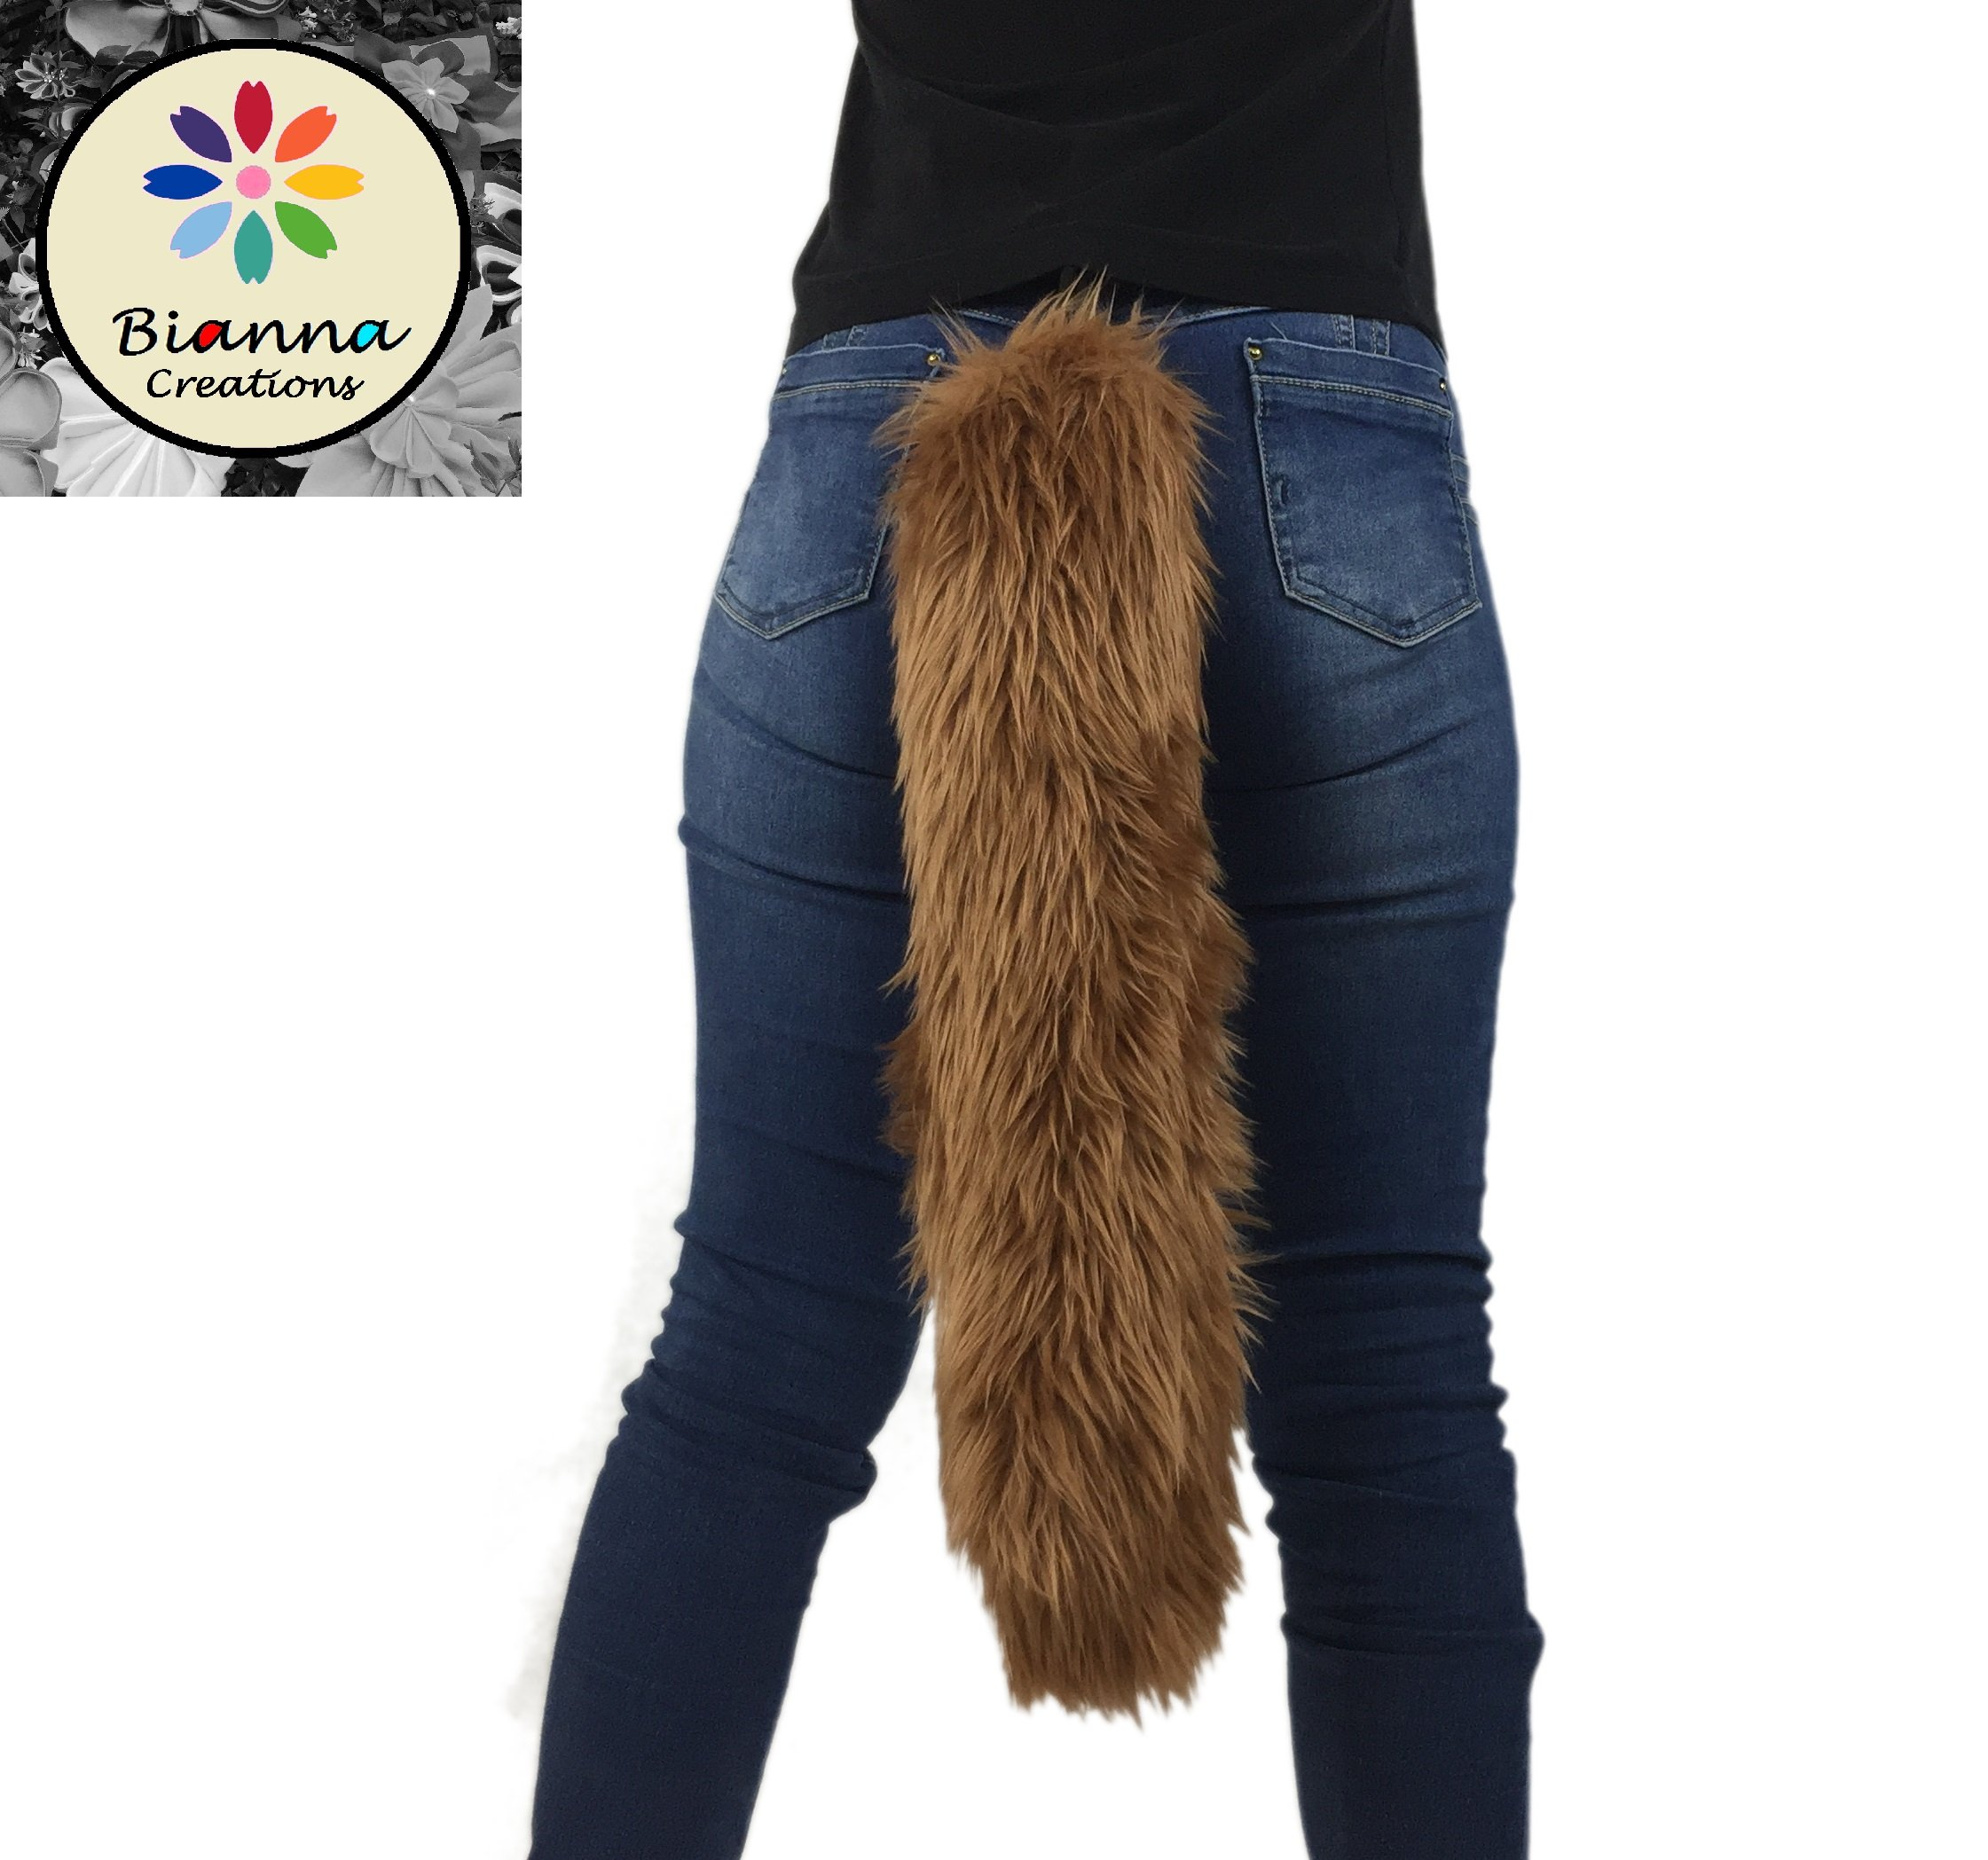 Long Faux Fur Animal Luxury Tail, Cosplay, Anime Lover, Costume Dress Up Pet Play Furry Super Soft Accessory (20'', Brown)